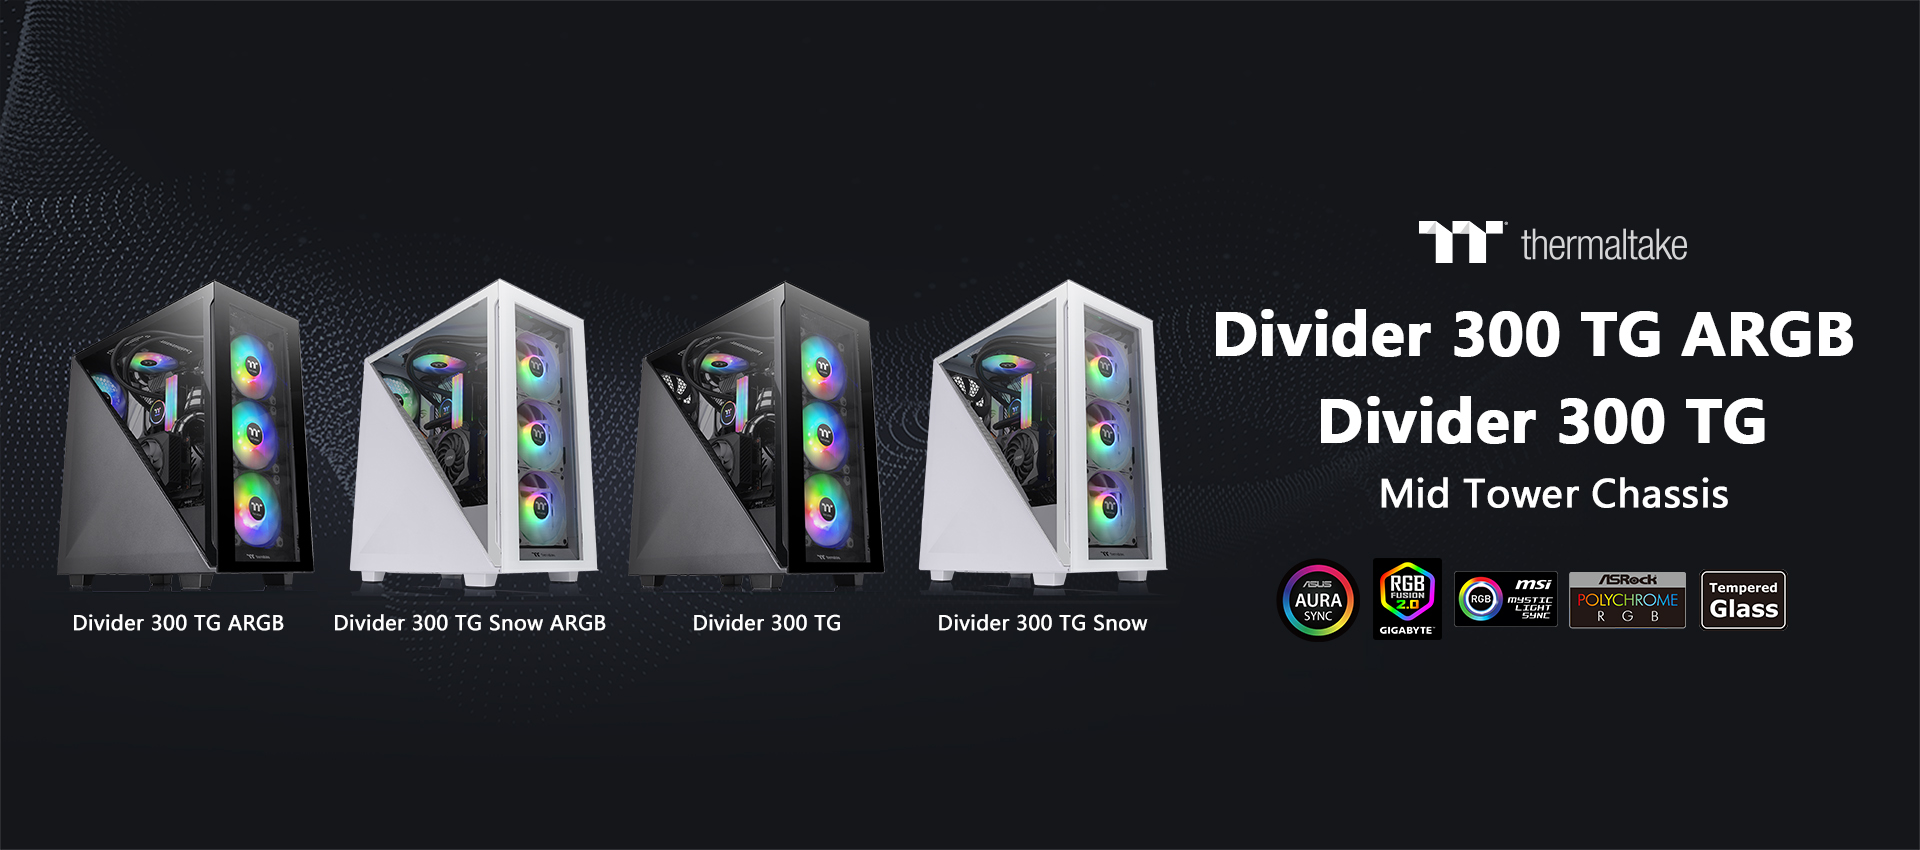 divider-300-tg-argb-mid-tower-chassis